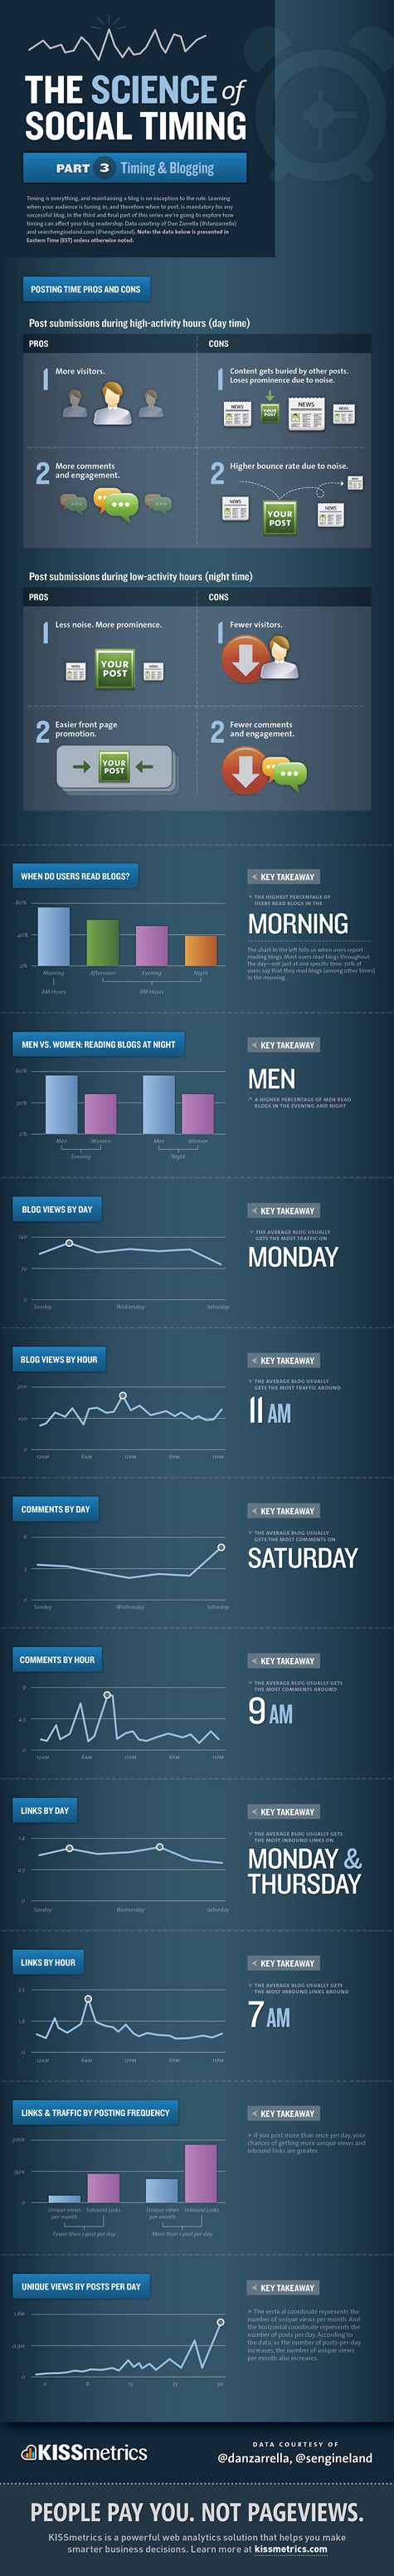 infographic Science of Social Timing